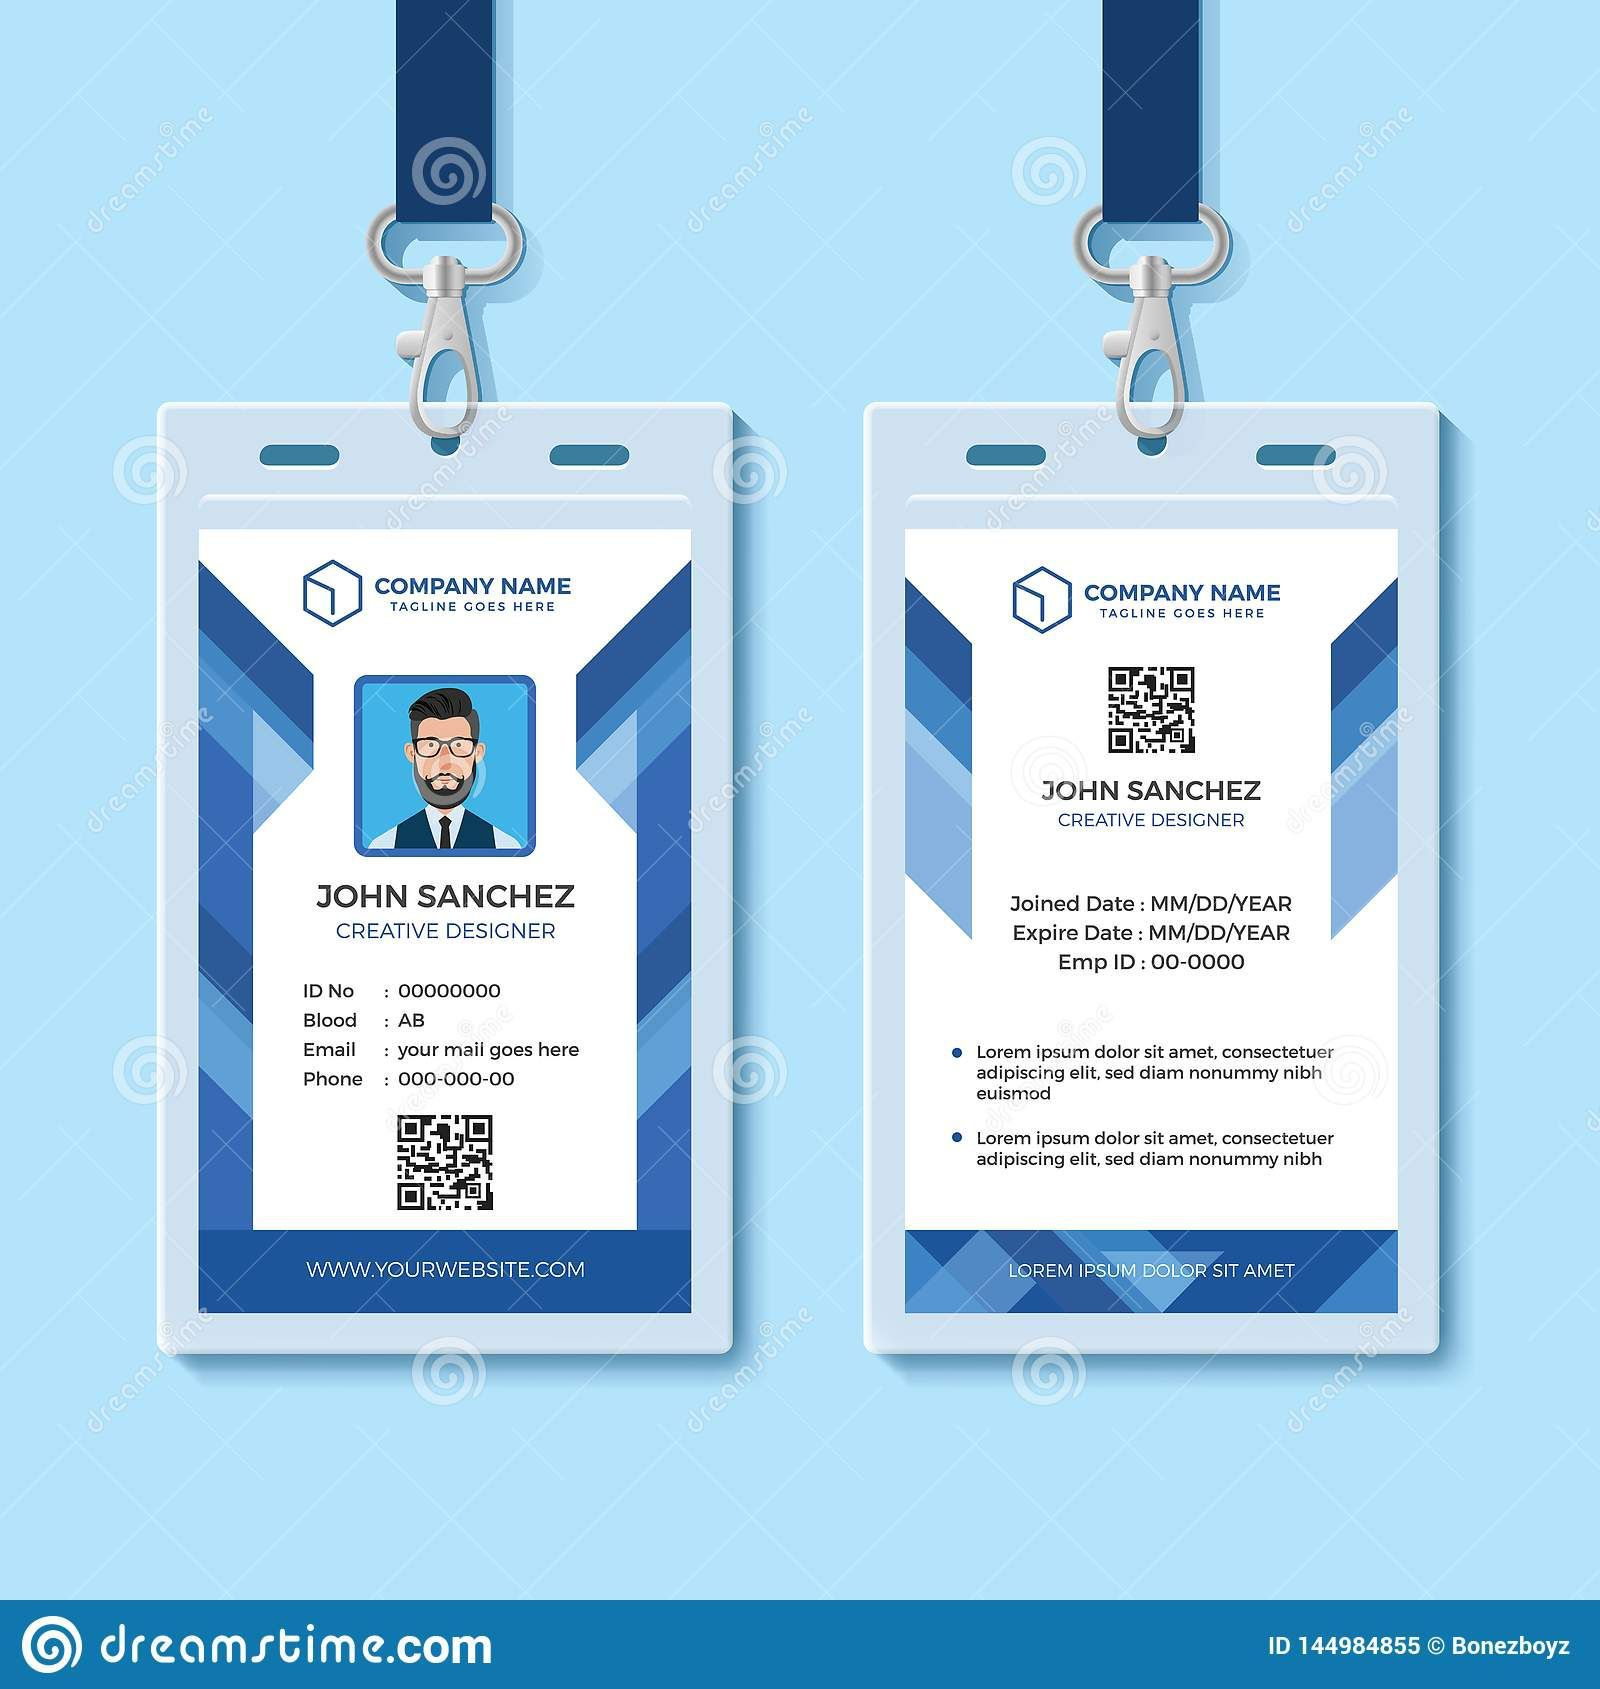 000 Fantastic Employee Id Badge Template Photo  Avery Card Free Download WordFull